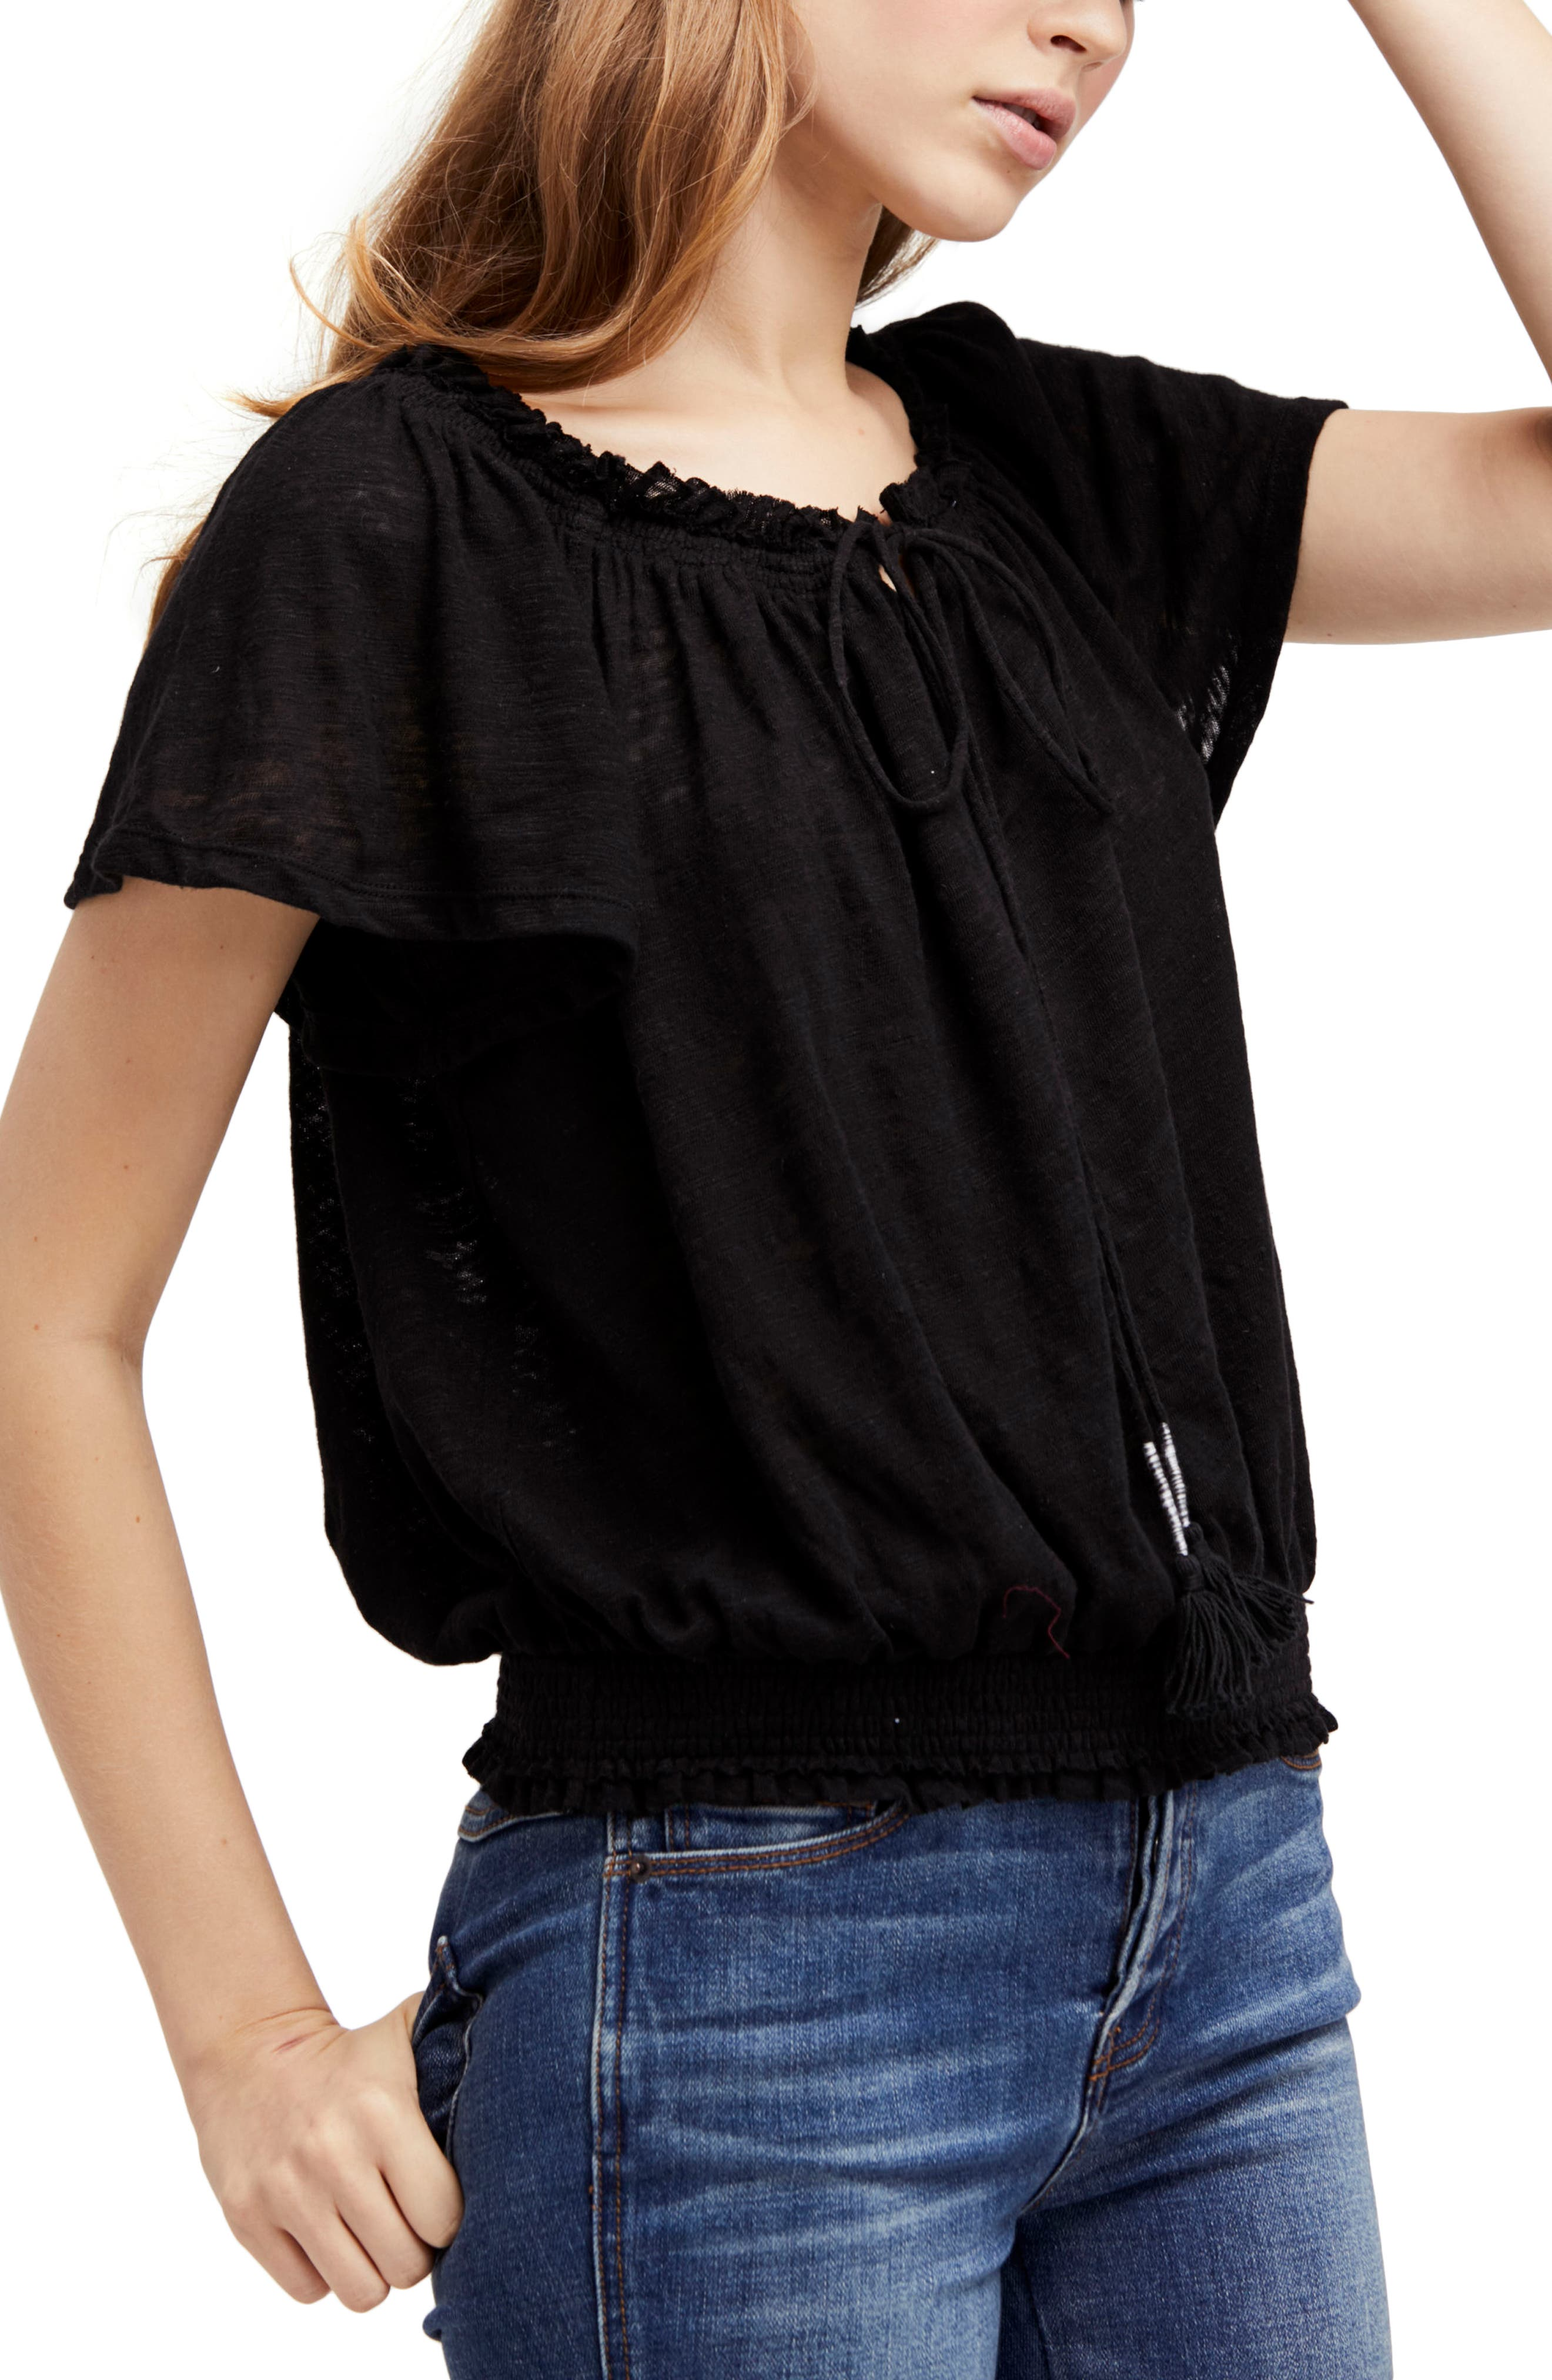 Hummingbird Tee,                         Main,                         color, Black